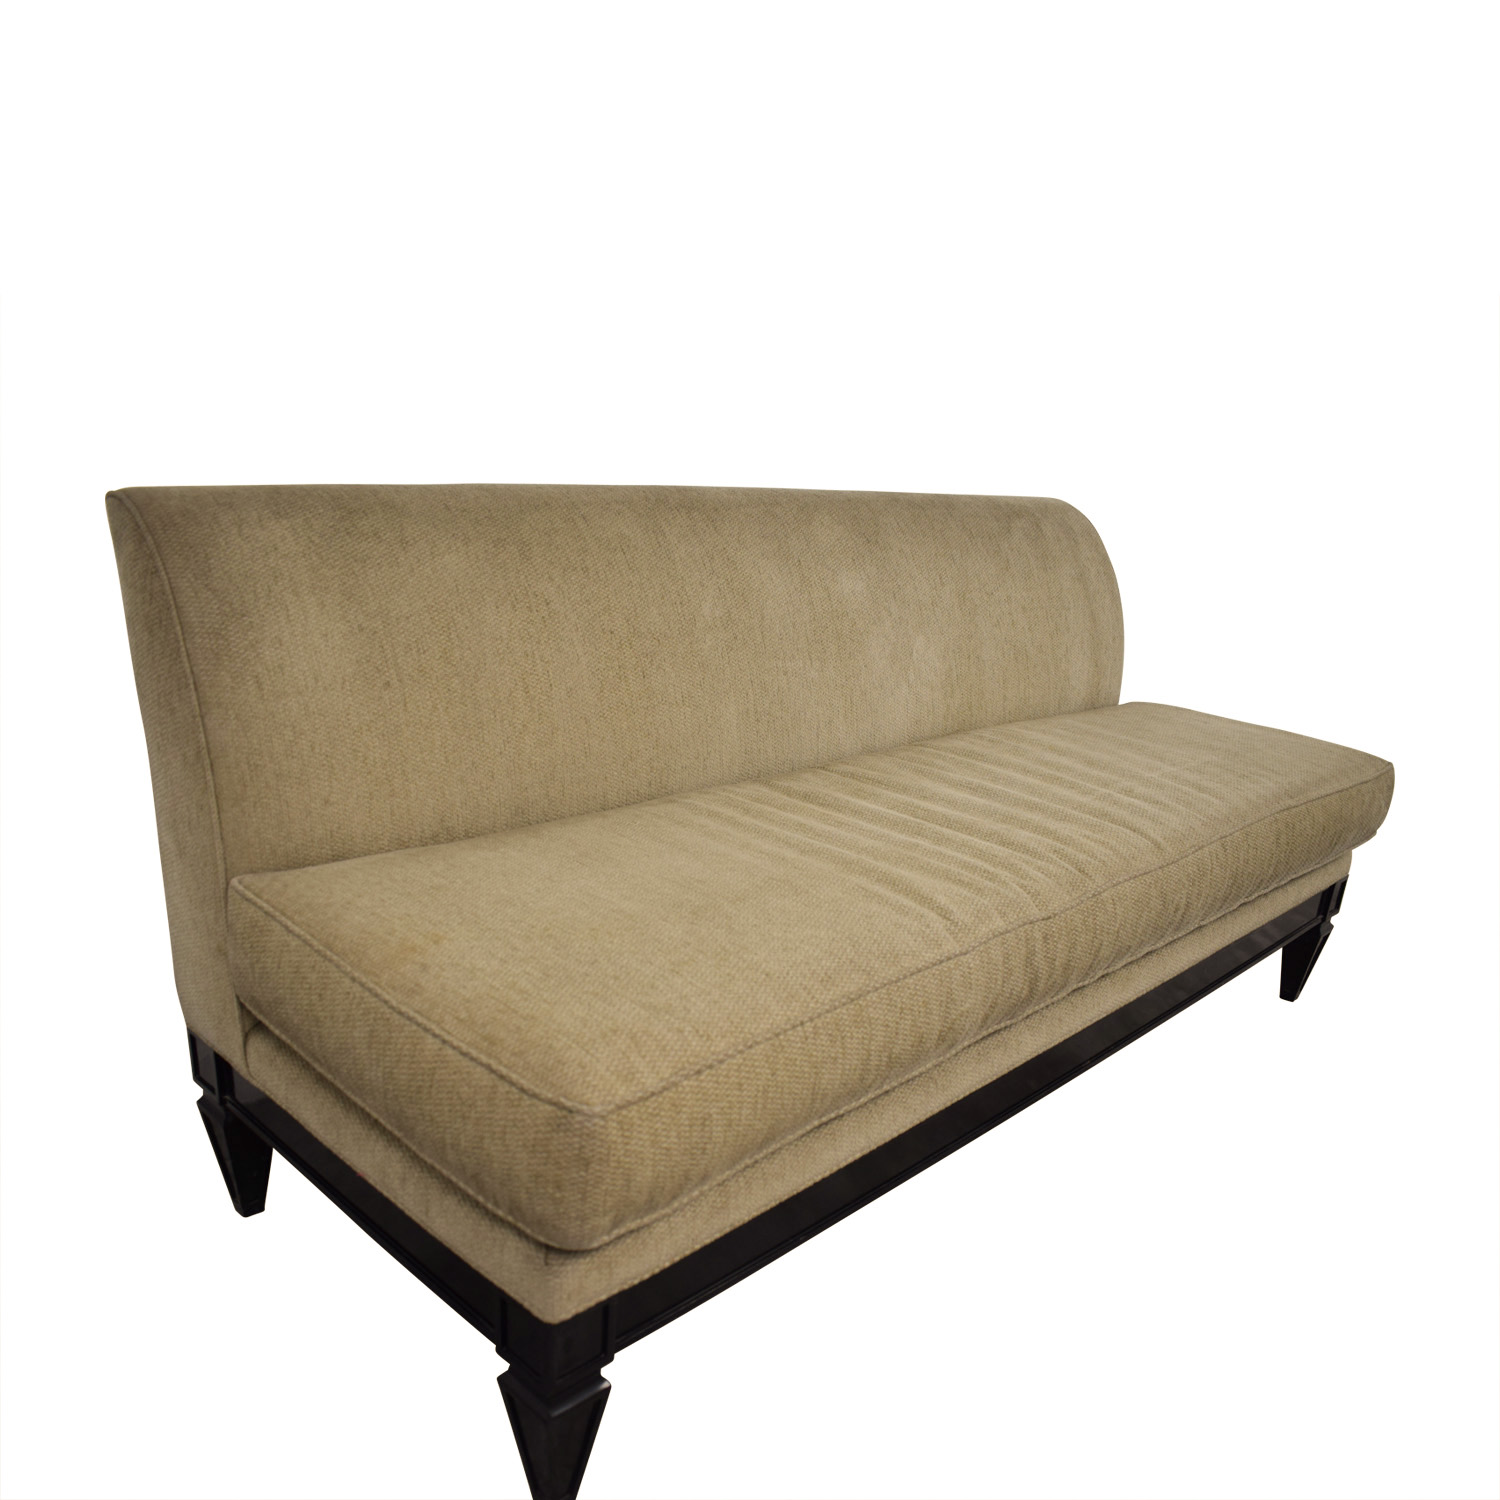 Todd Hase Todd Hase Tan Single Cushion Couch coupon